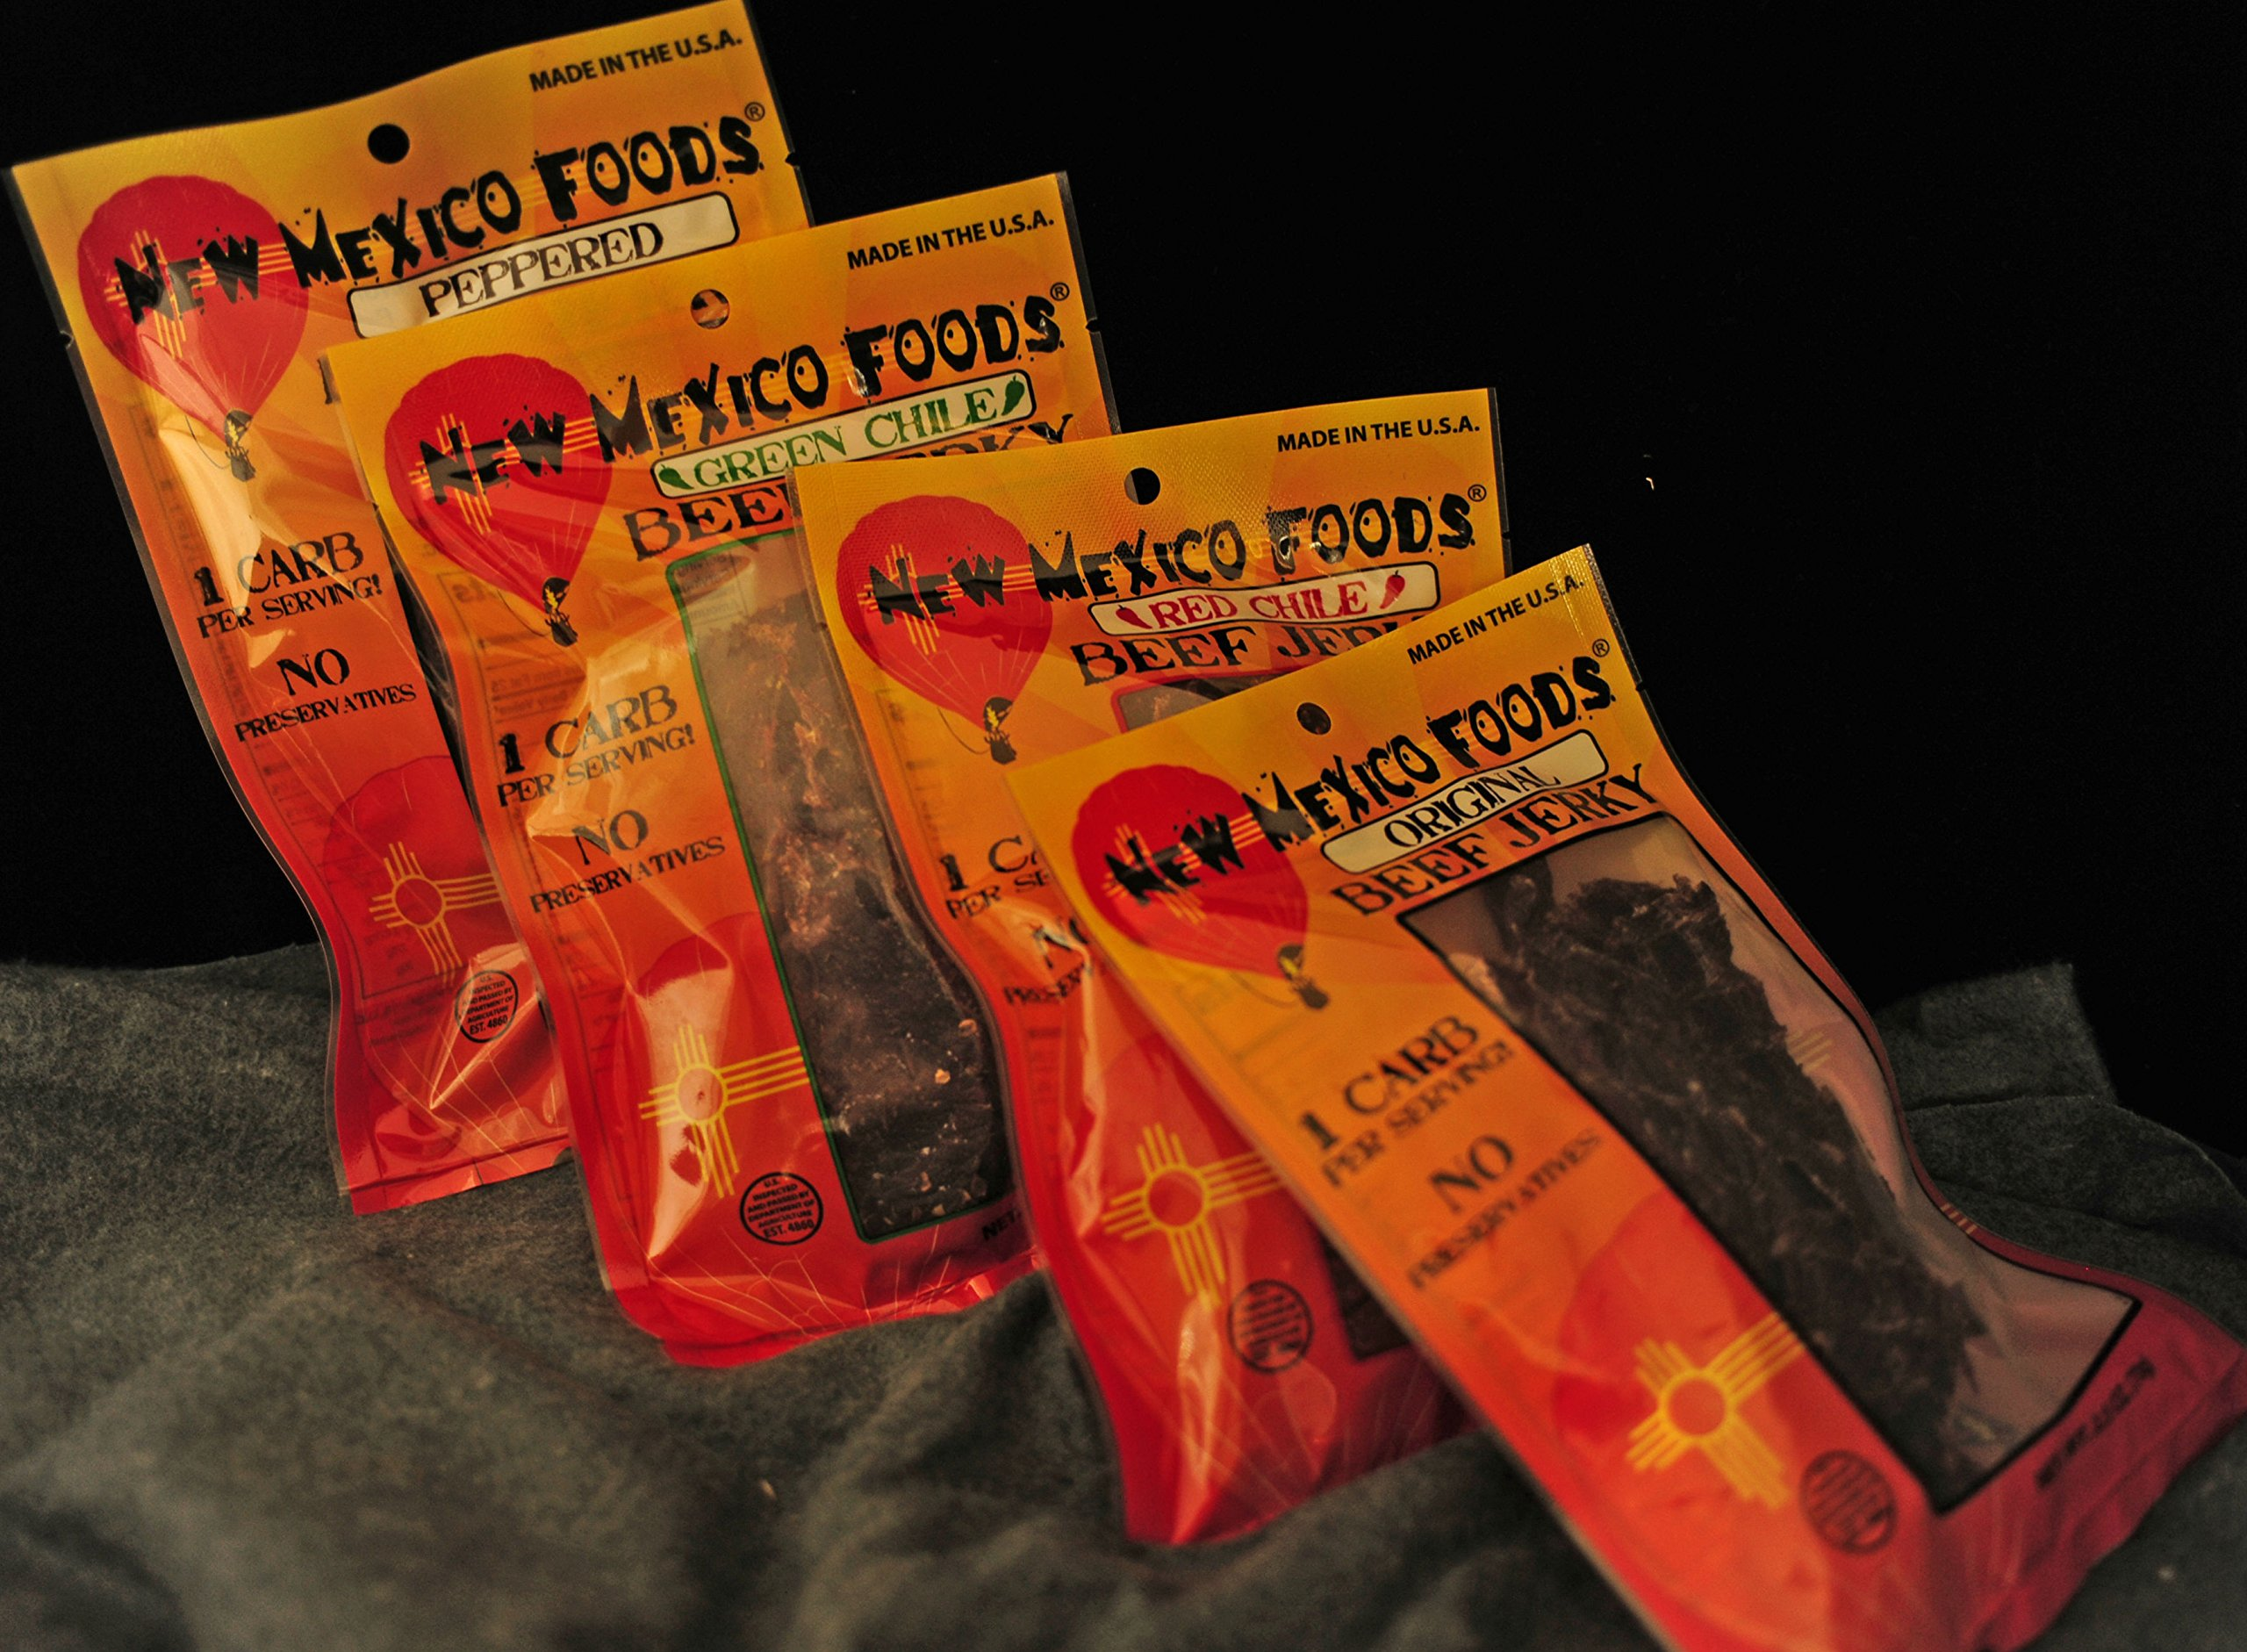 New Mexico Foods Beef Jerky 100% Natural and Preservative Free 4 Pack .8 oz. Mixed Package, Red Chile, Green Chile, Peppered, Original